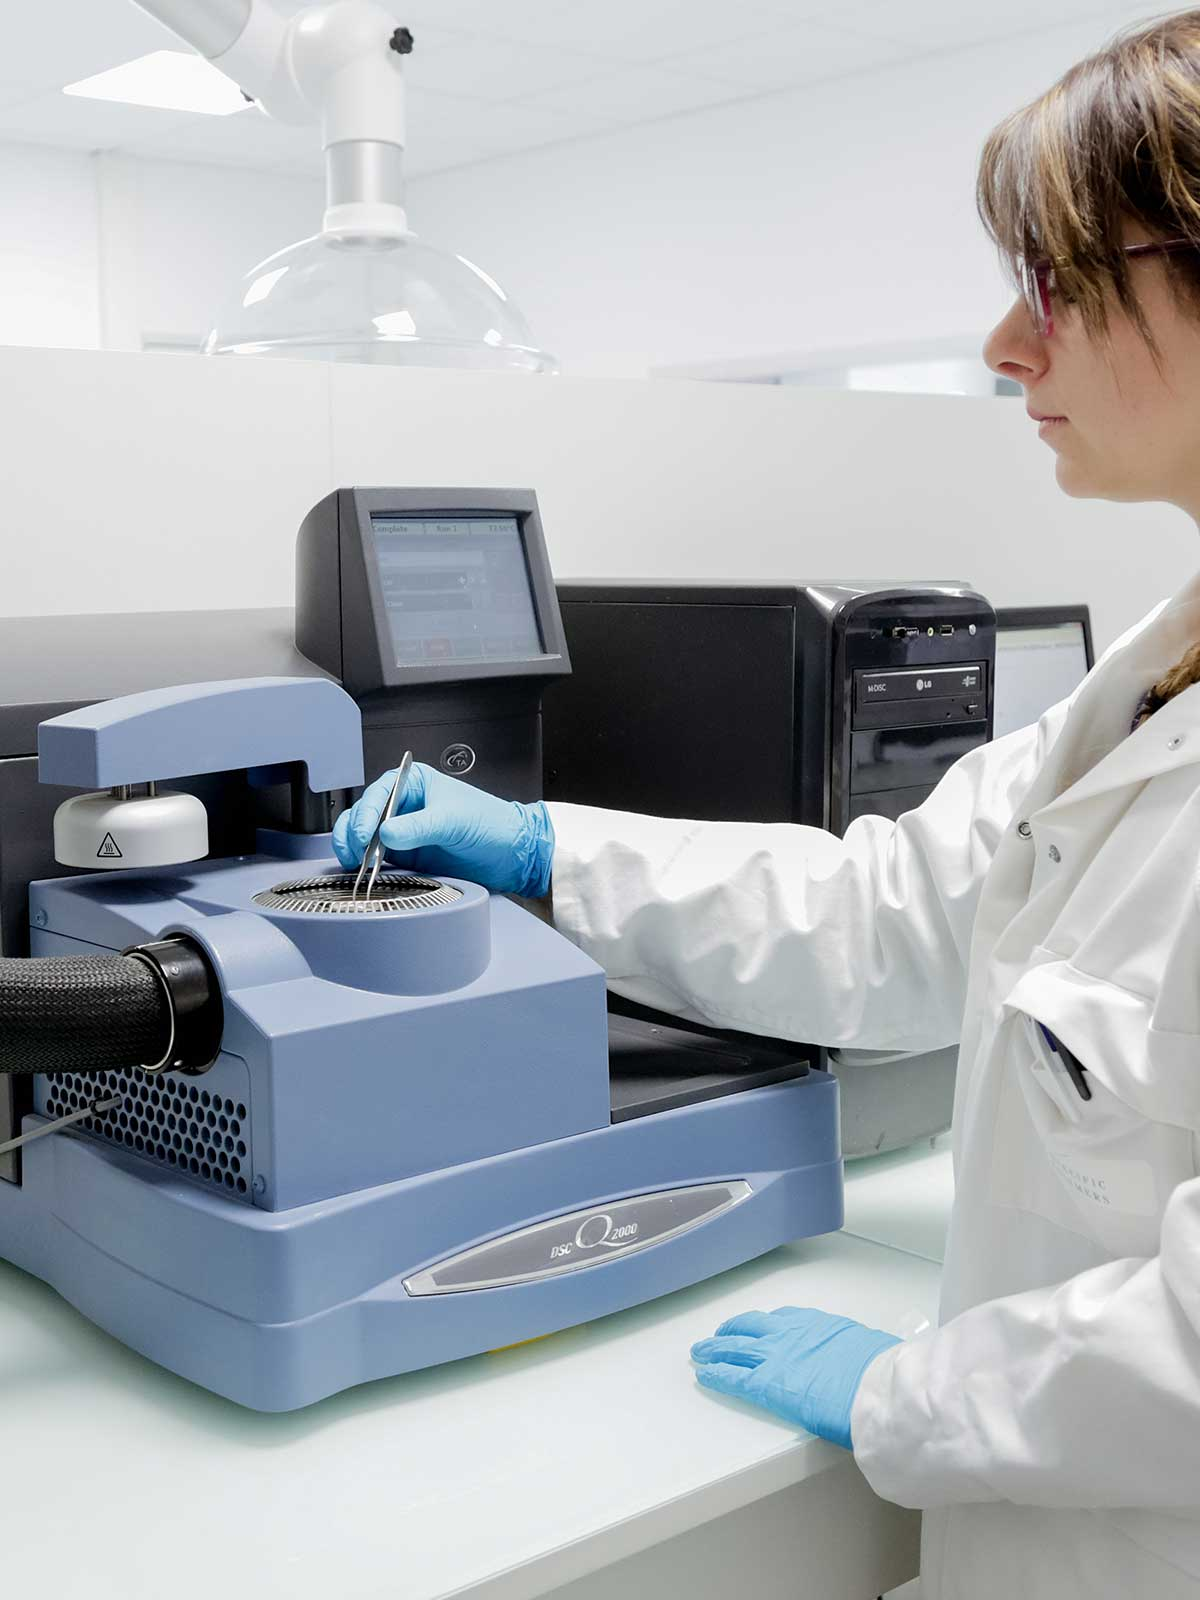 physico-chemical analyses with dsc at SPECIFIC POLYMERS